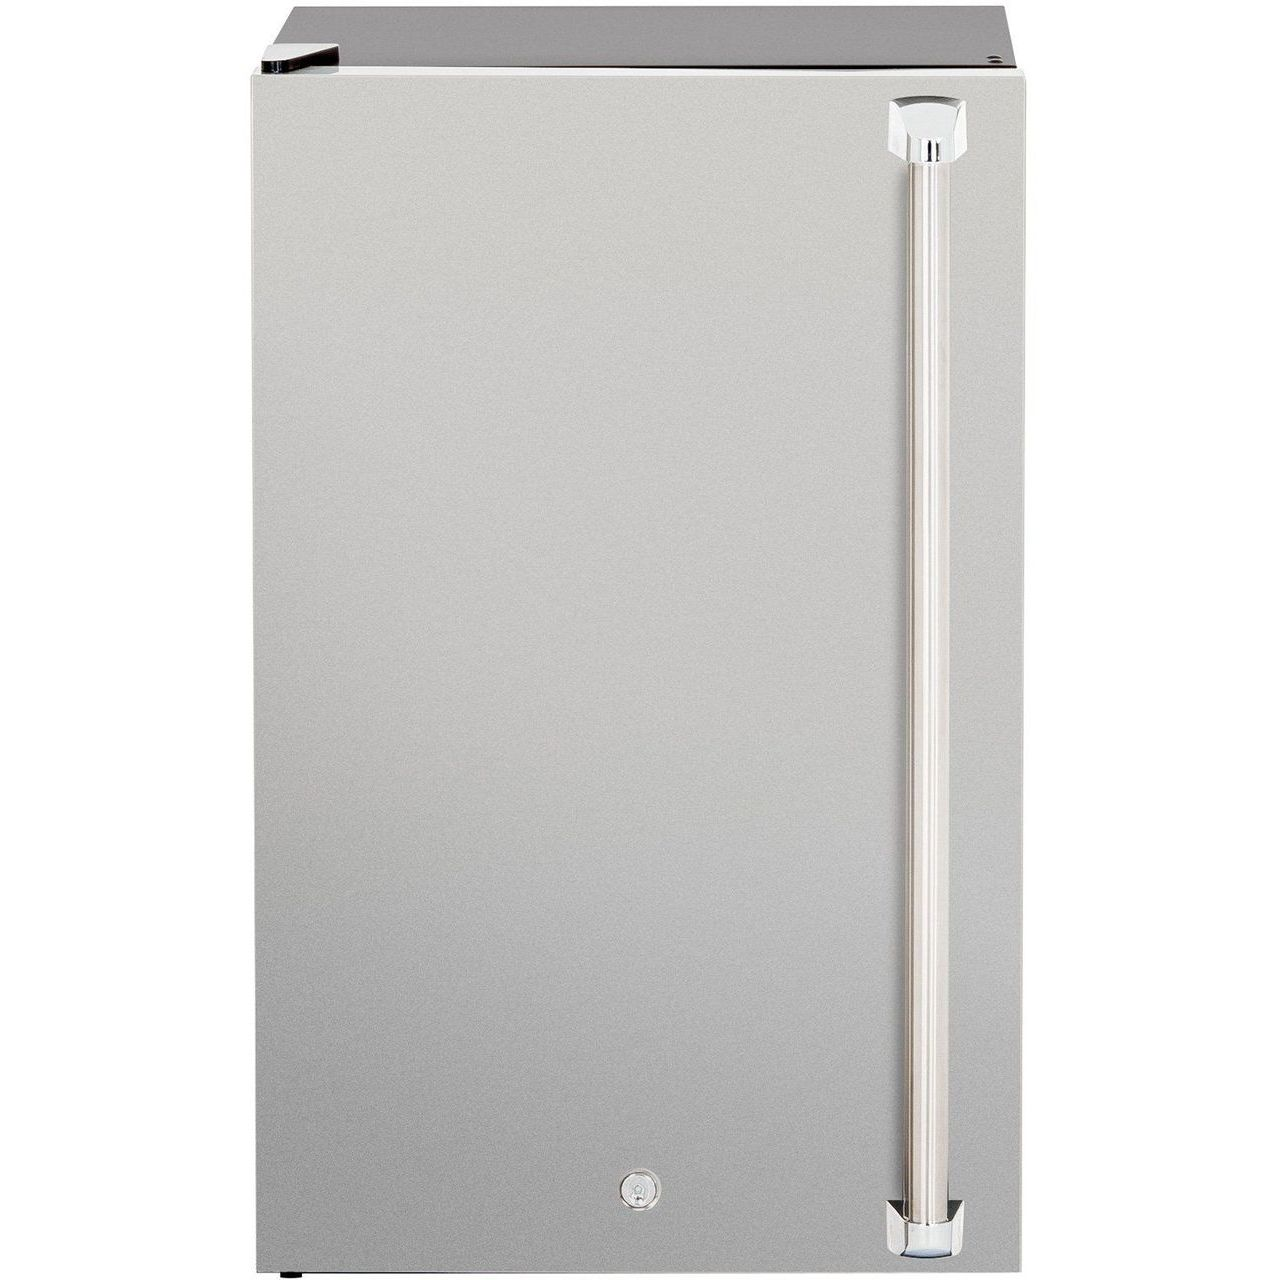 """Summerset 21"""" 4.5c Deluxe Compact Fridge - Right to Left Opening"""